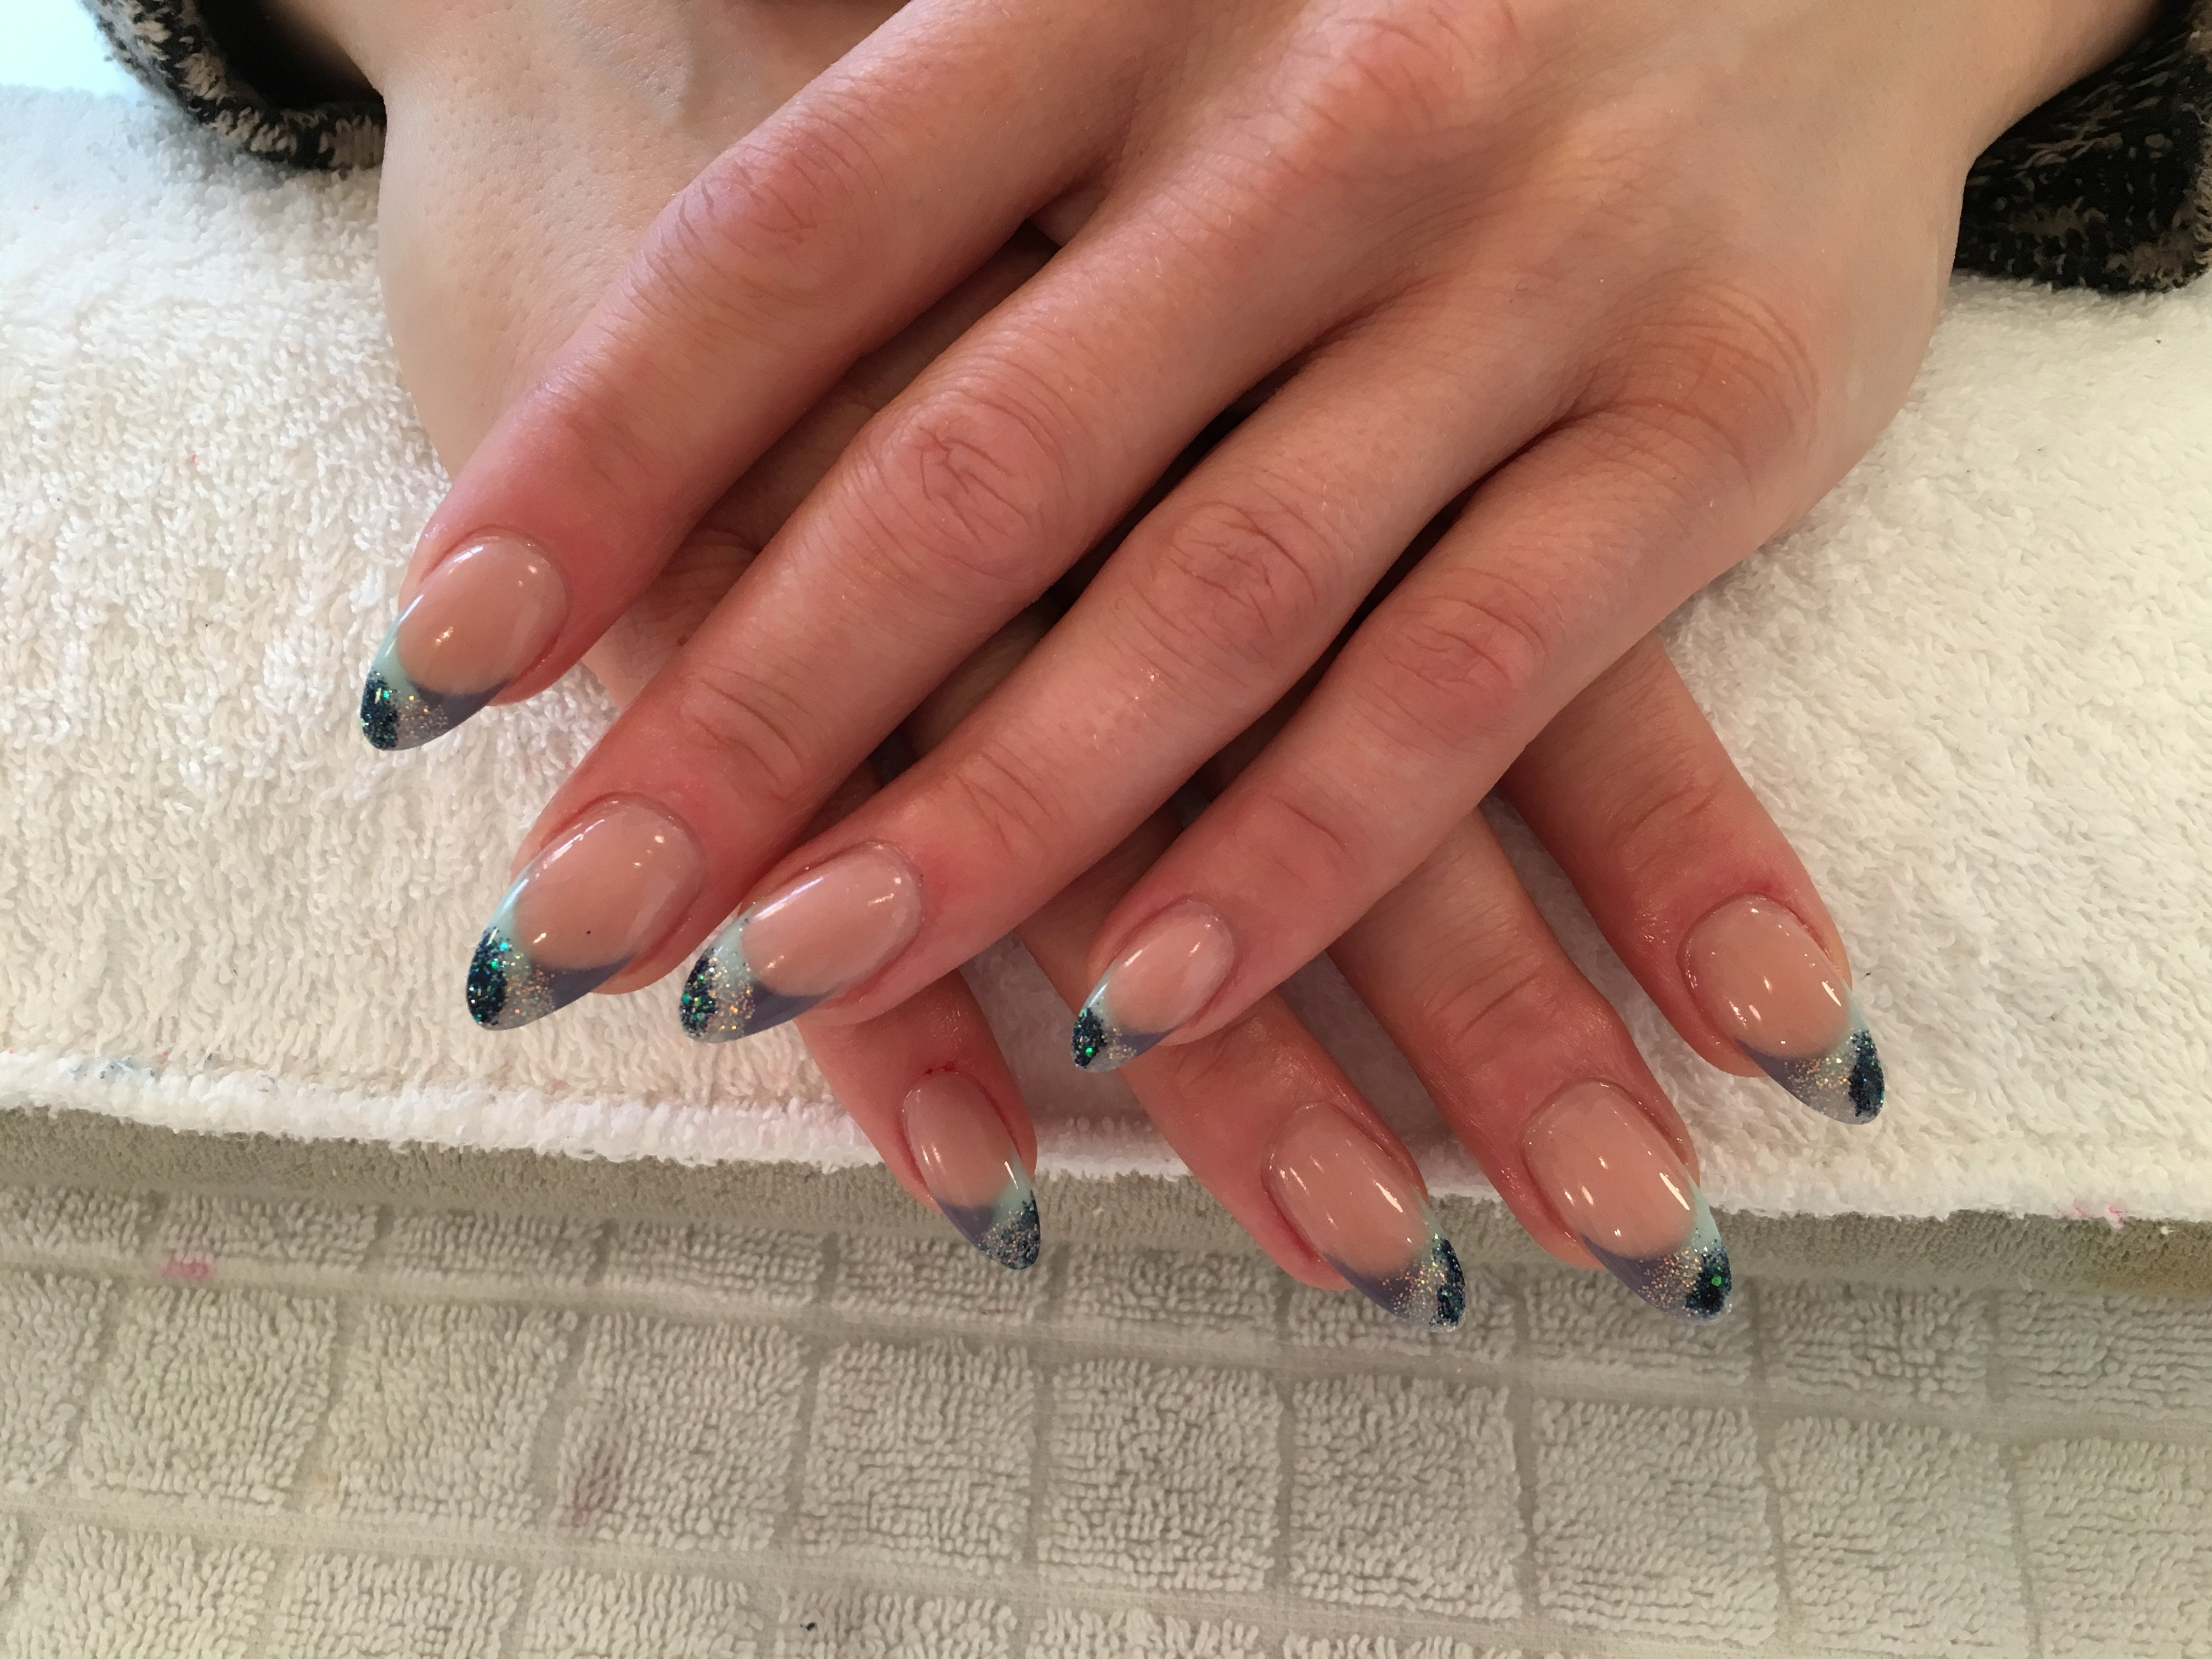 Care 4 Your Nails Beauty Salon Acryl Nagels Foto 18 Care 4 Your Nails Beauty Salon